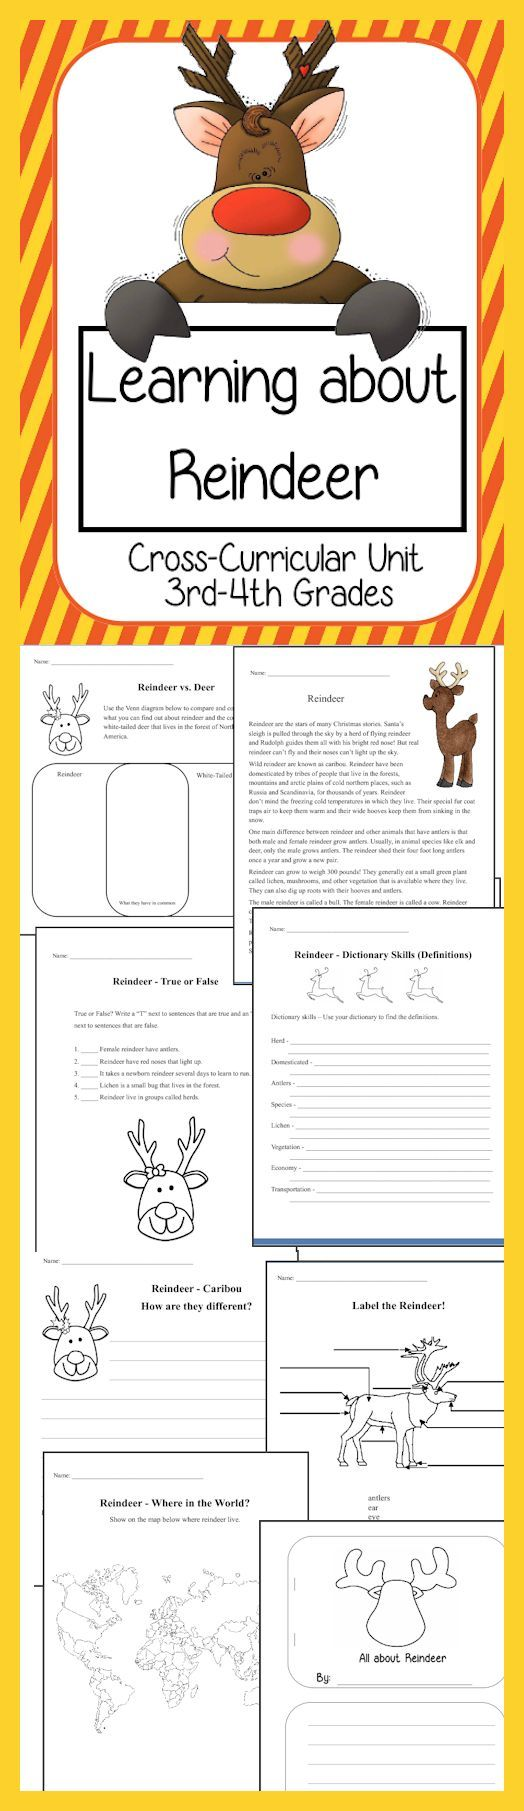 Learning about Reindeer: A Cross-Curricular Unit - Students will have fun learning all about reindeer when using this unit! Includes reading comprehension, student worksheets, venn diagrams where students can compare/contrast reindeer/white-tailed deer/caribou, write paragraphs using their research, write an acrostic poem, map work and more.  http://www.christianhomeschoolhub.com/pt/Christmas-Themed-Resources/wiki.htm